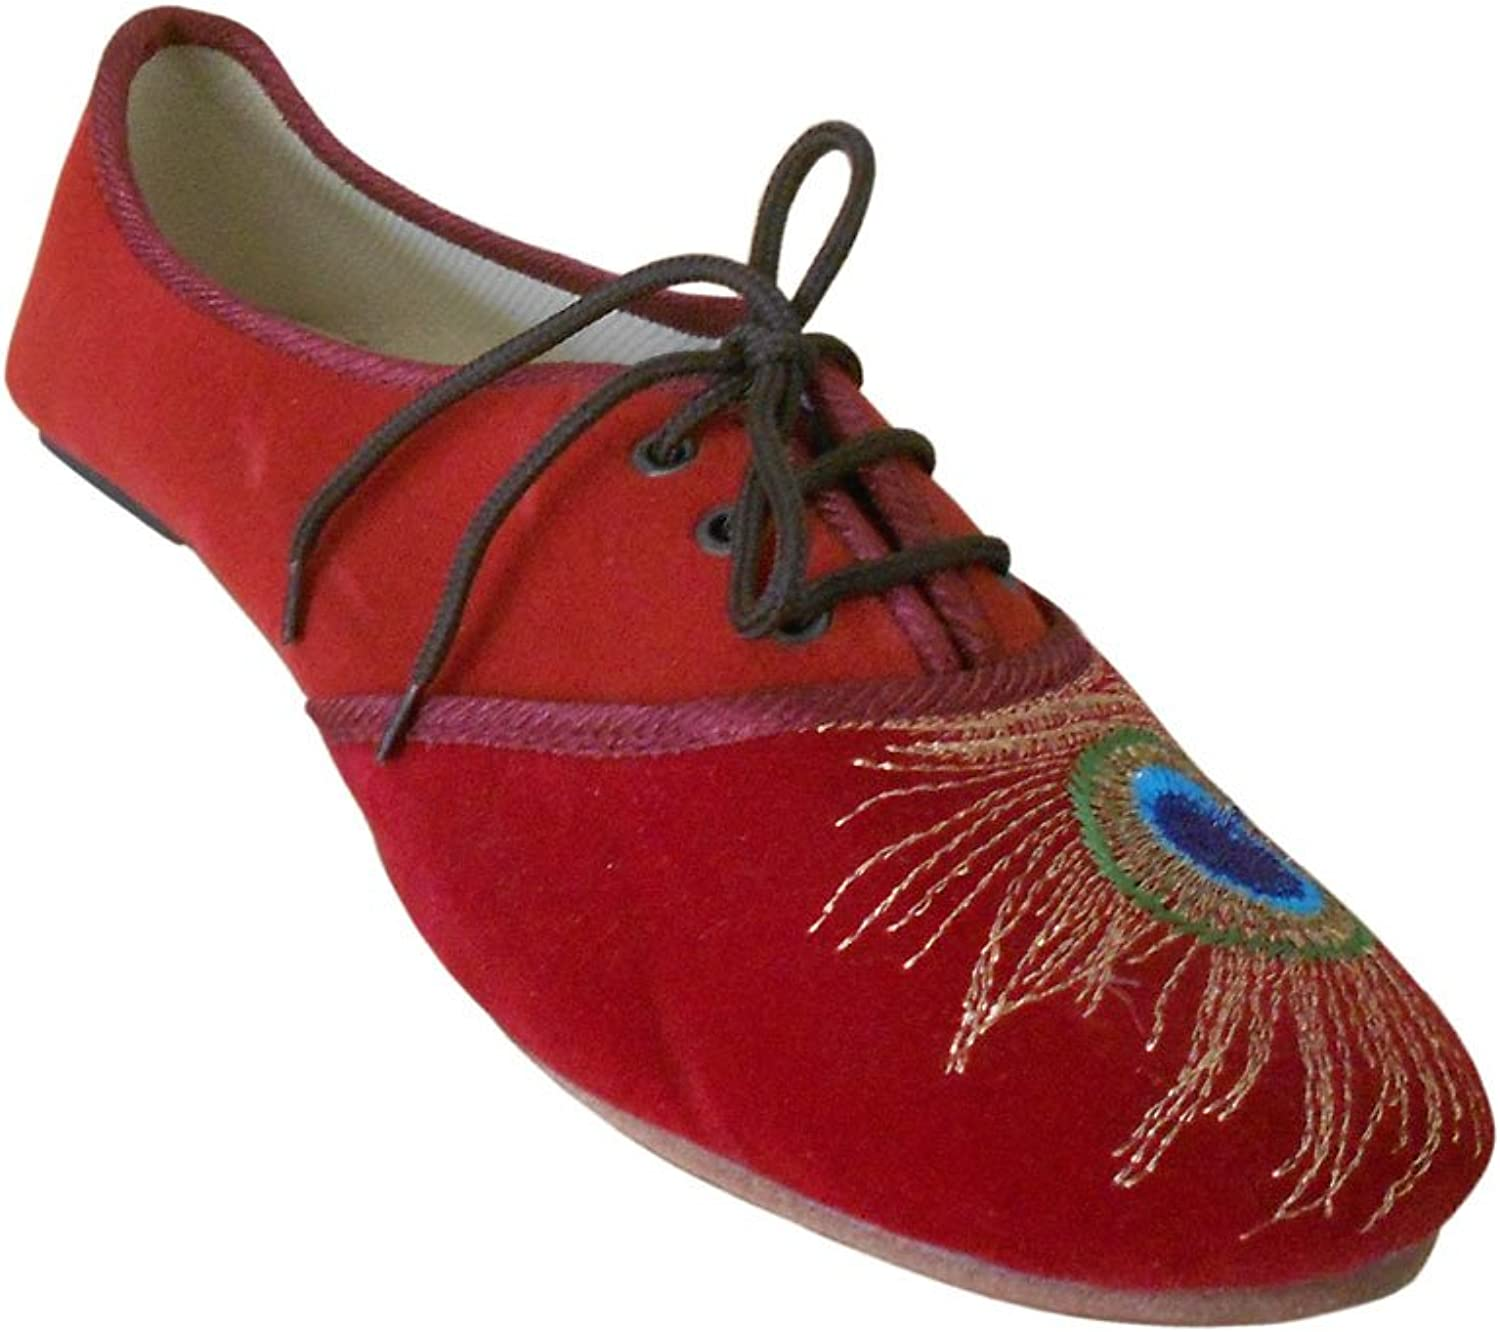 Kalra Creations Women's Traditional Indian shoes Velvet Loafer Flats